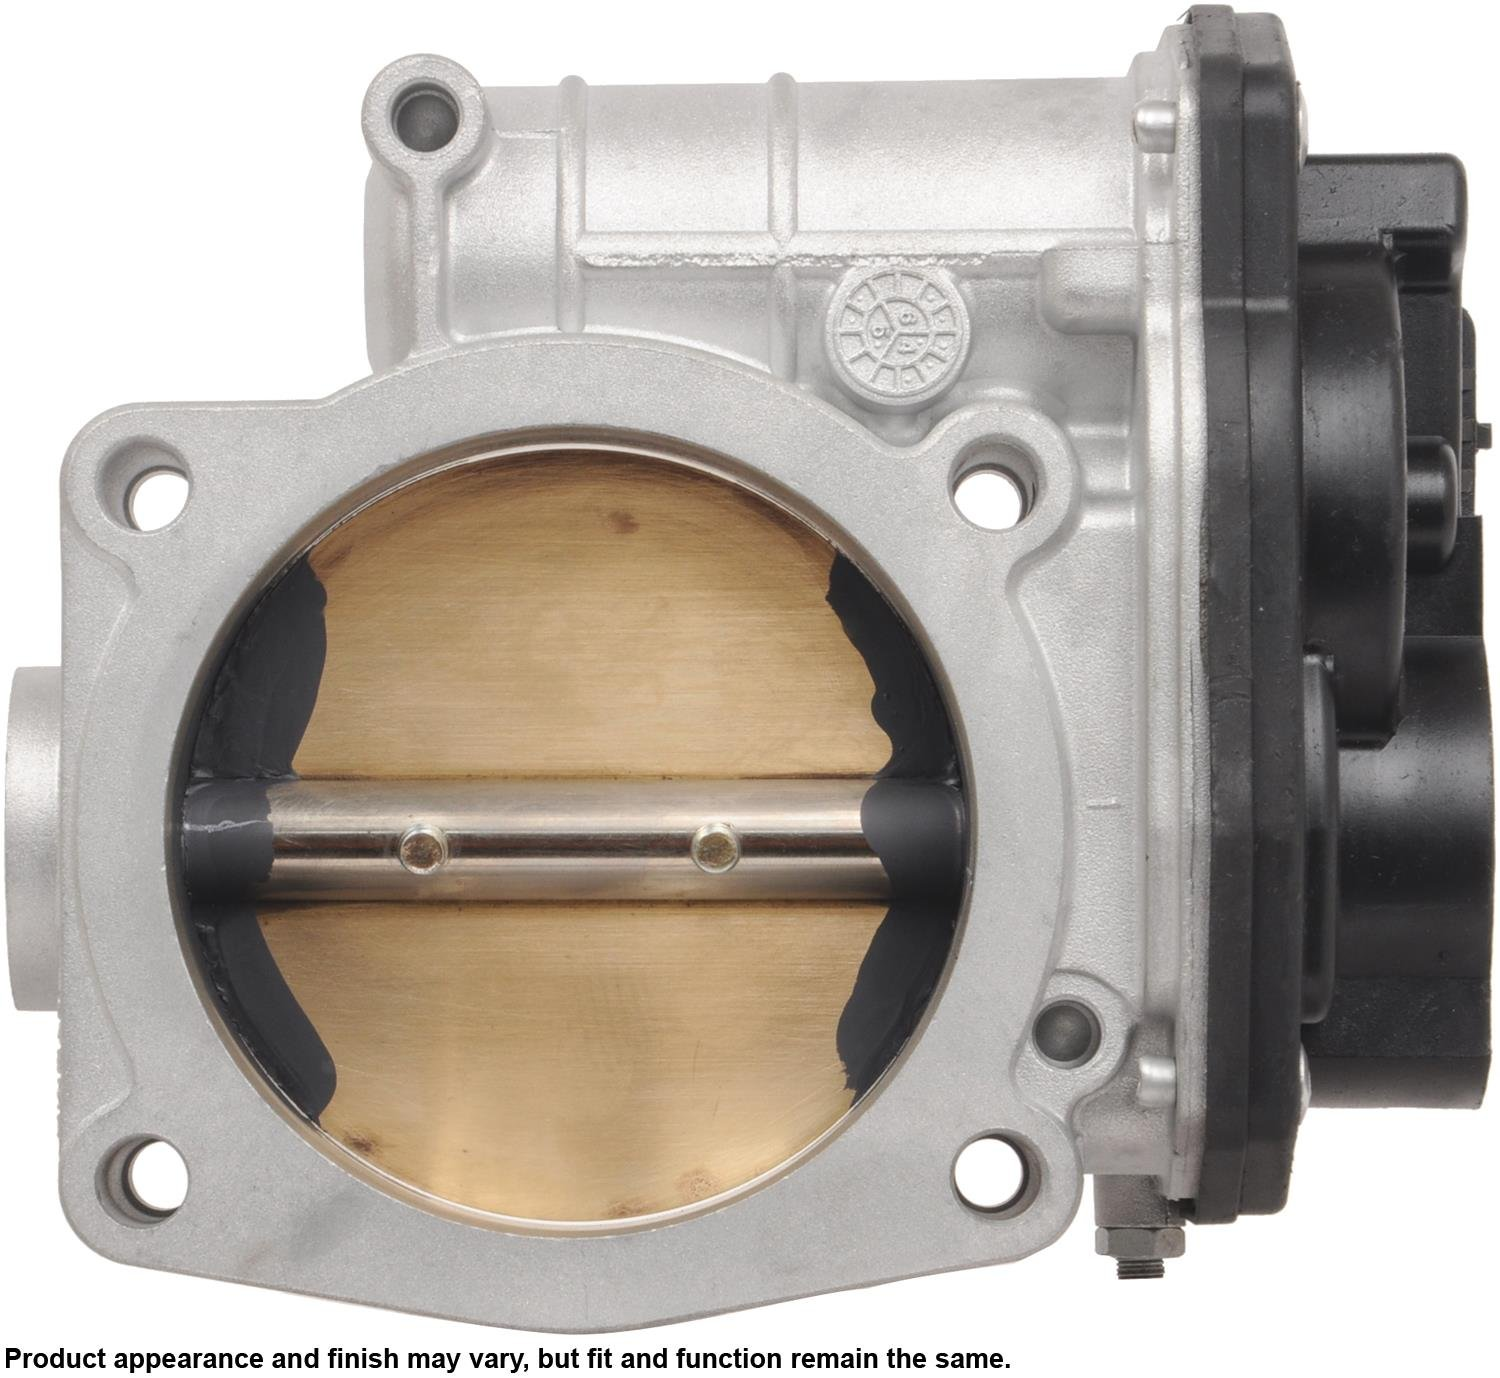 A1 Cardone 67-0016 Remanufactured Throttle Body, 1 Pack by A1 Cardone